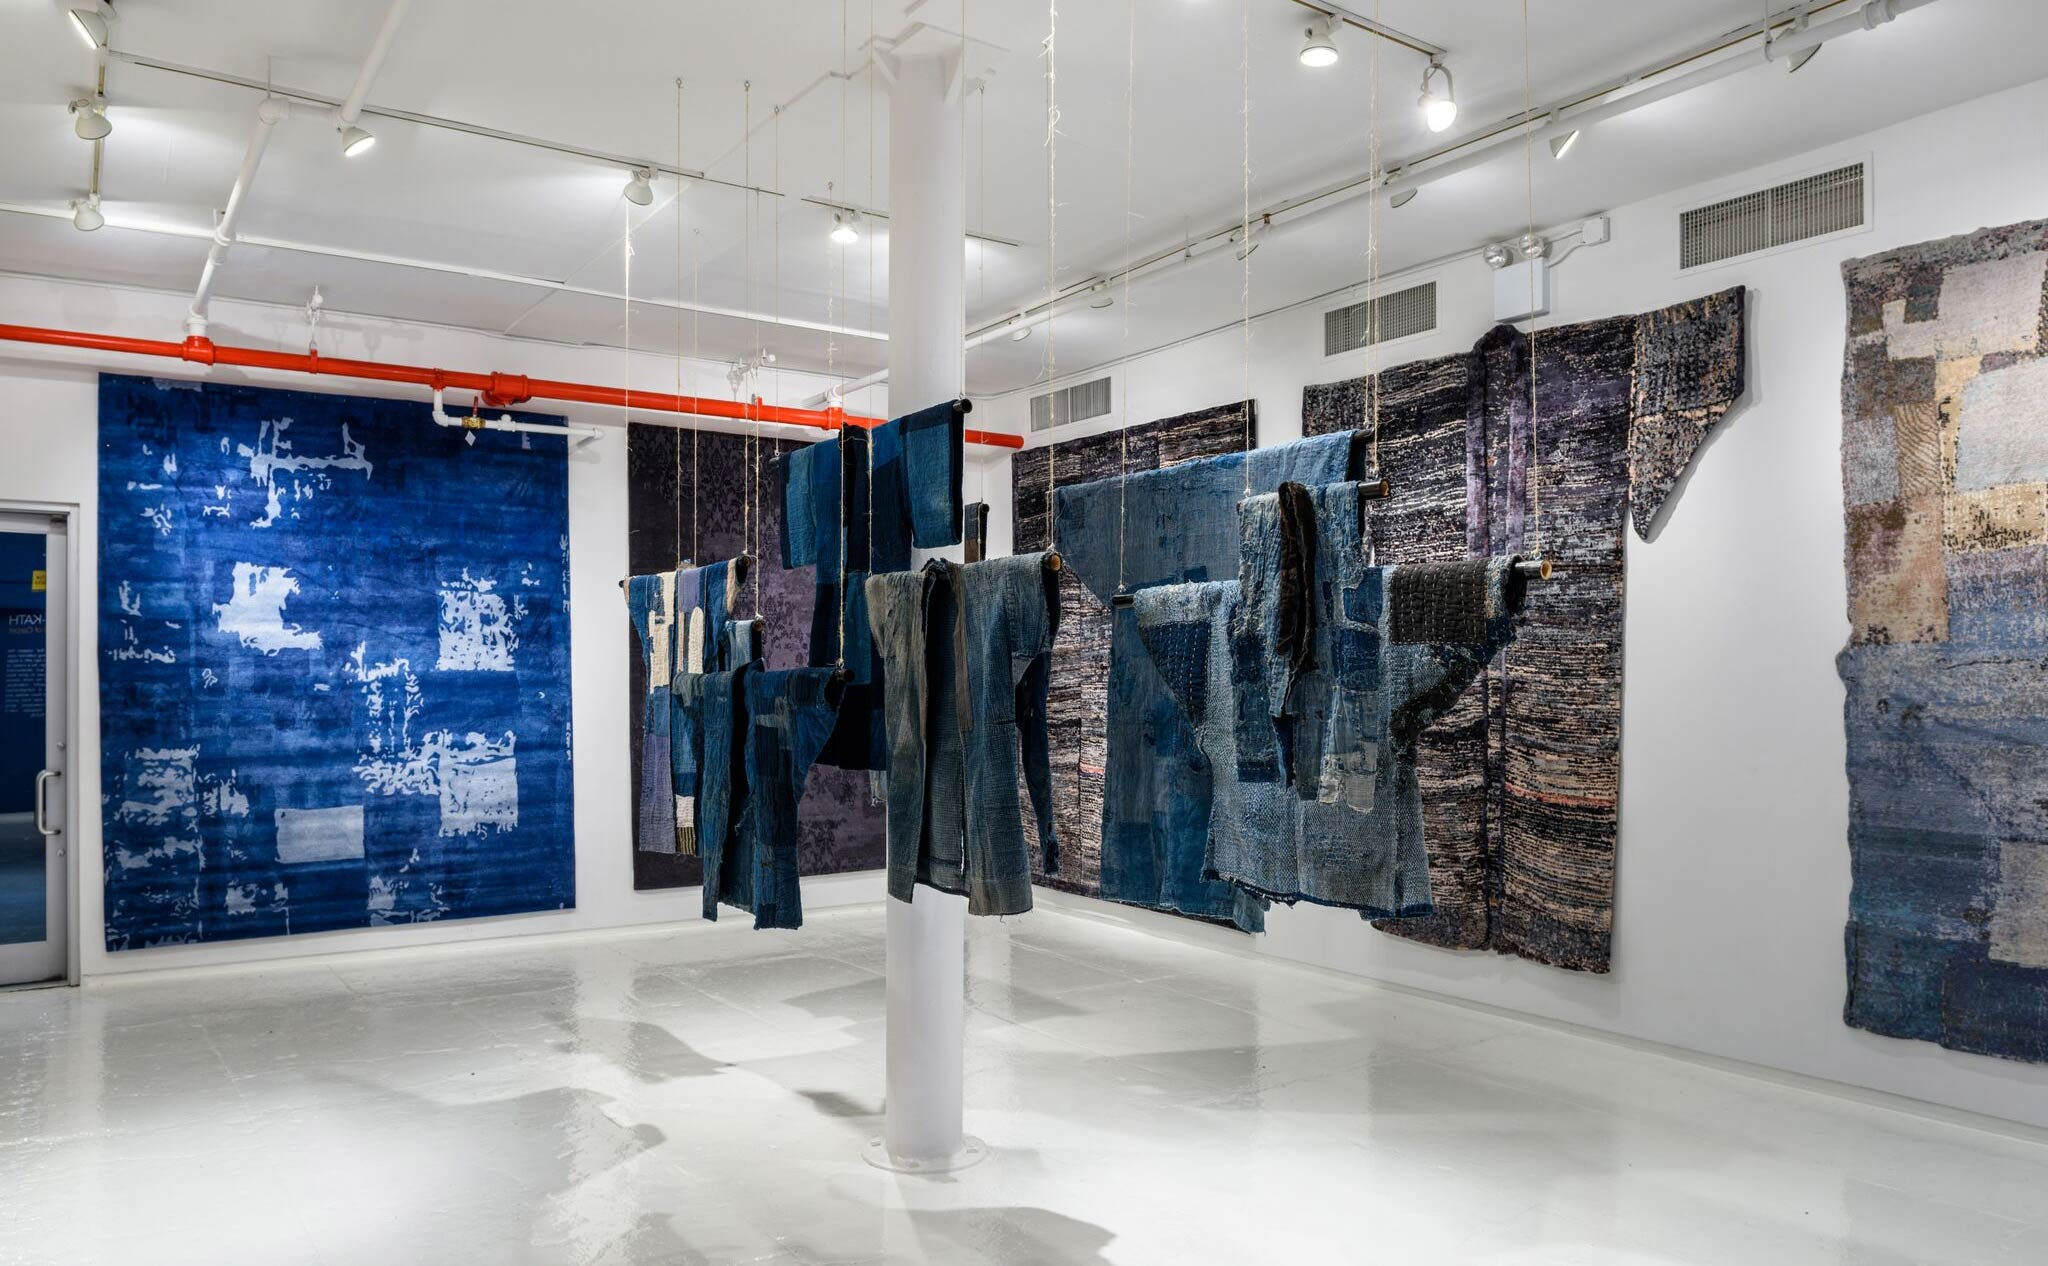 Traditional Boro textile garments (on loan to Jan Kath from a private collection) displayed in juxtaposition to the firm's contemporary carpet collection by the same name. | Image courtesy of Jan Kath.